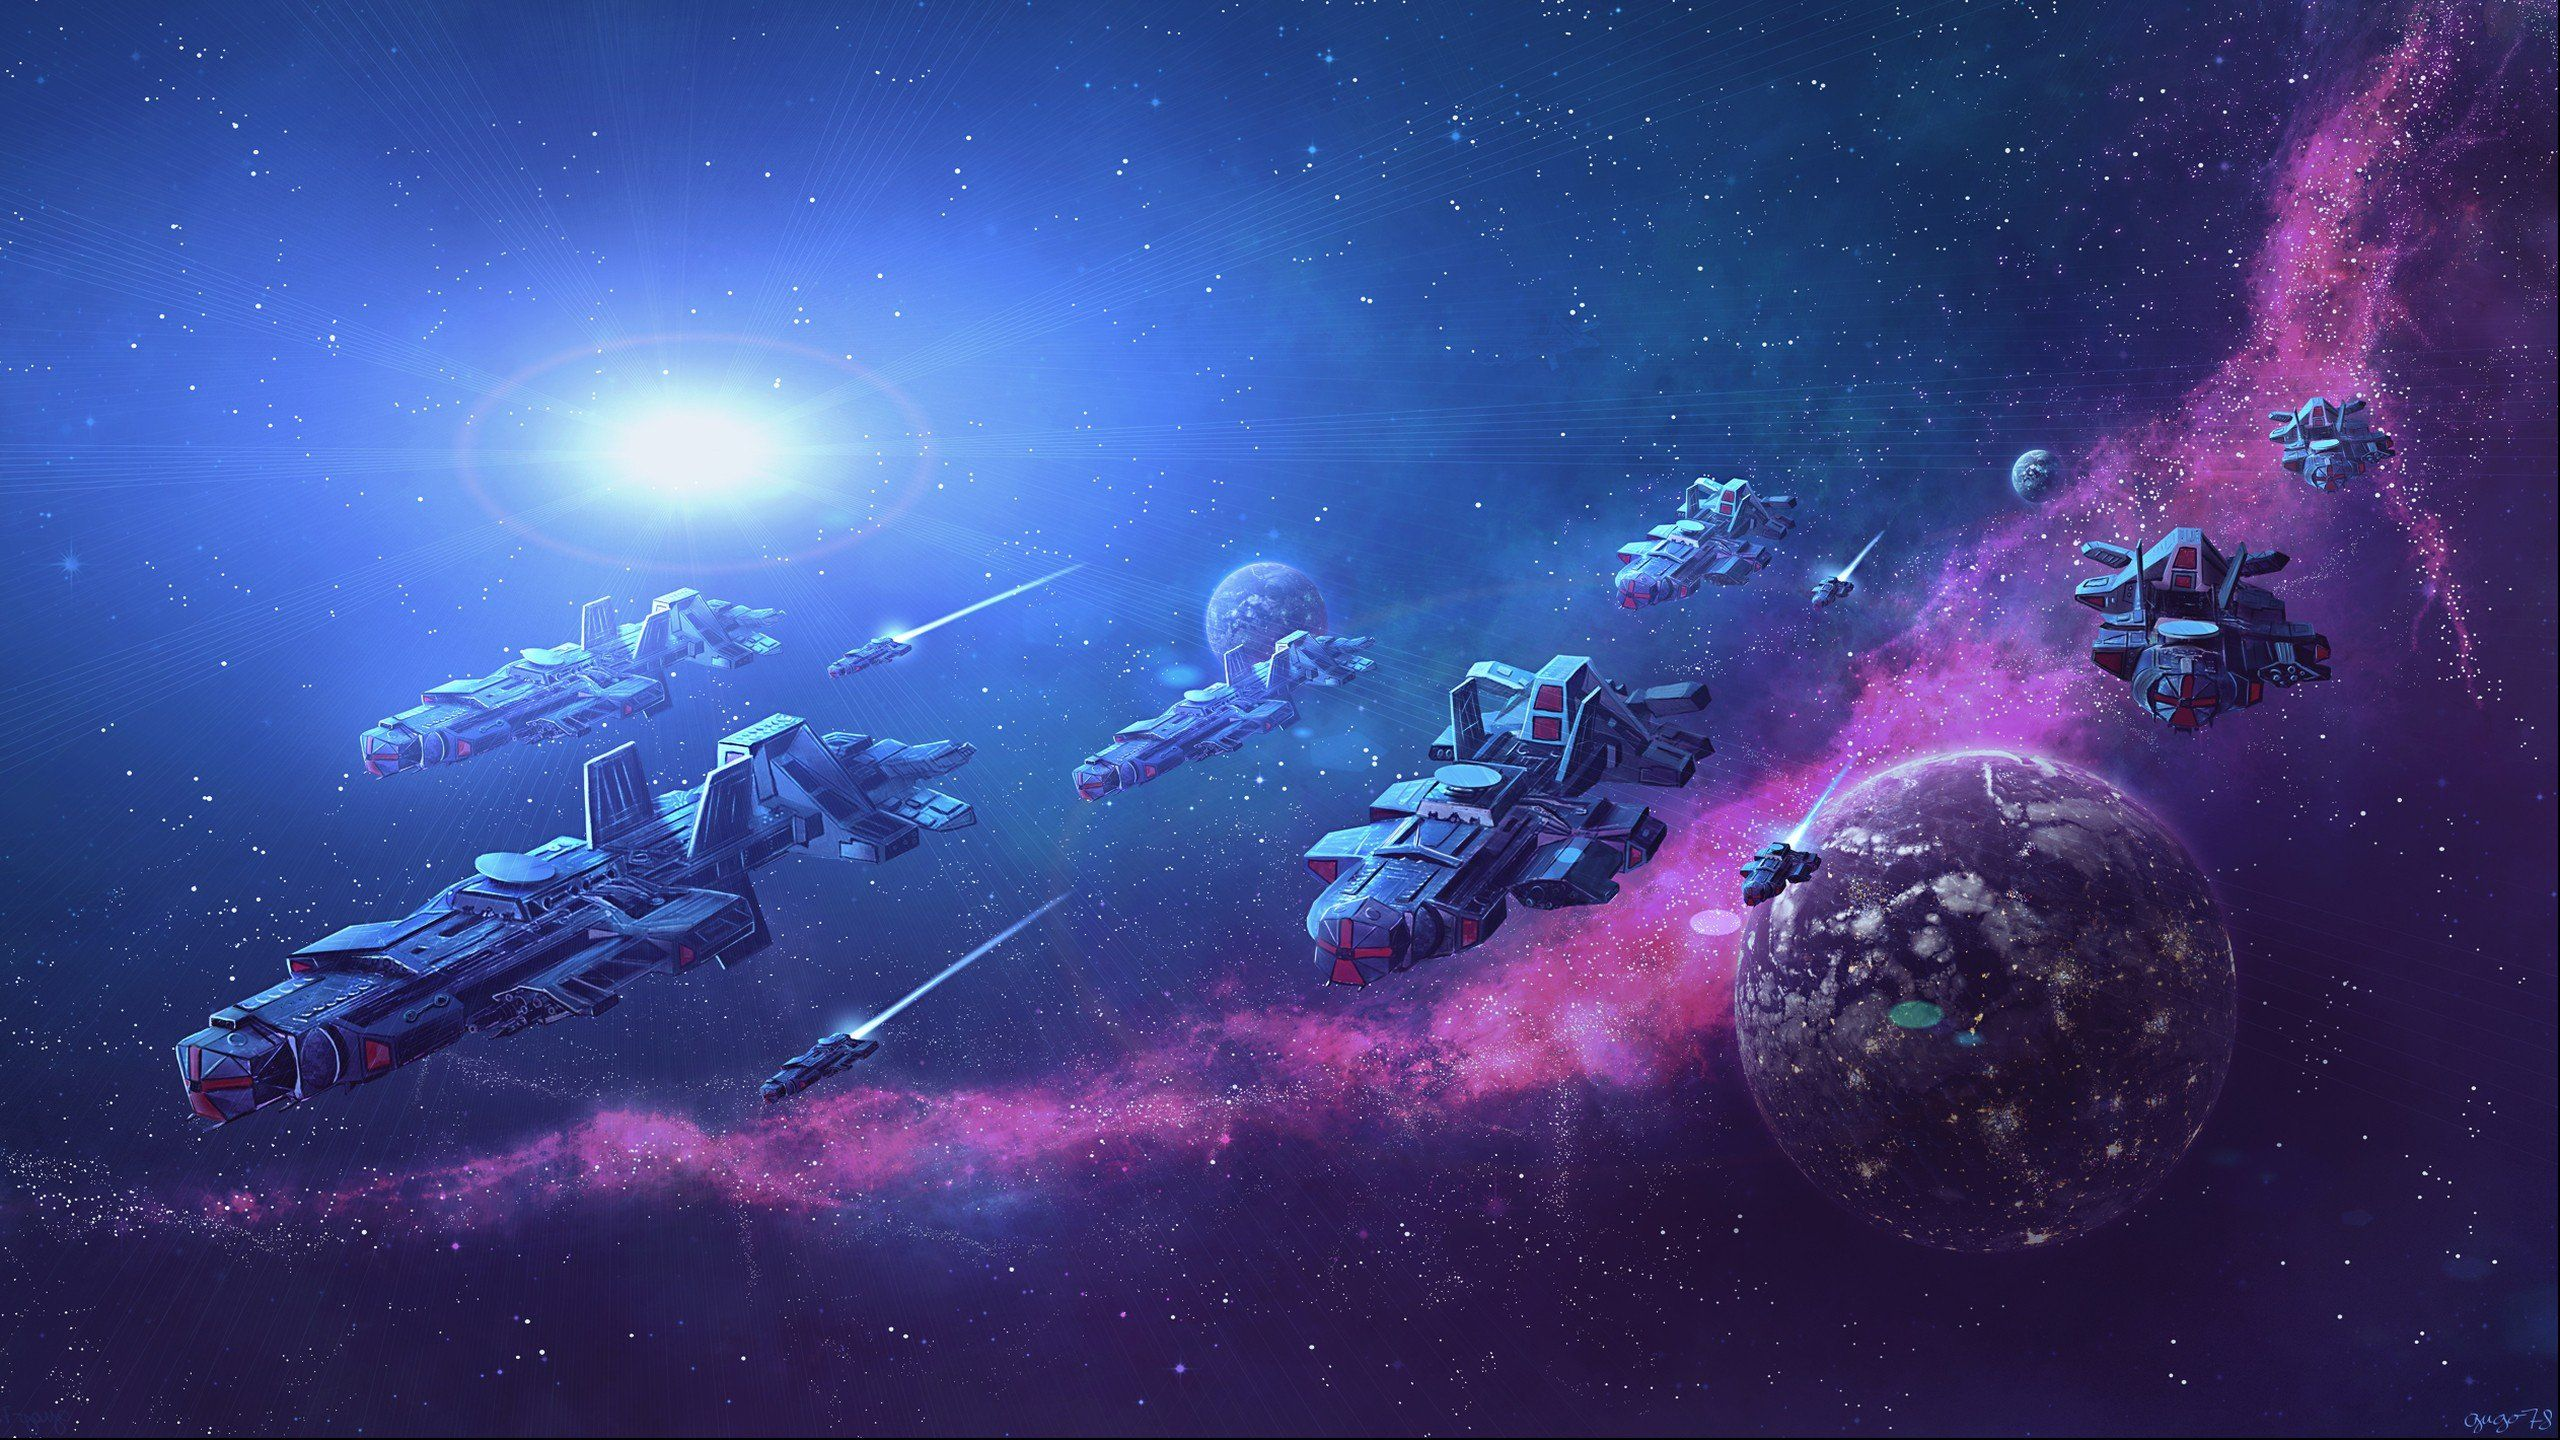 Download Hd Wallpapers Of 322707 Spaceship Free Download High Quality And Widescreen Resolutions Desktop Background Images Space Desktop Backgrounds Wallpaper